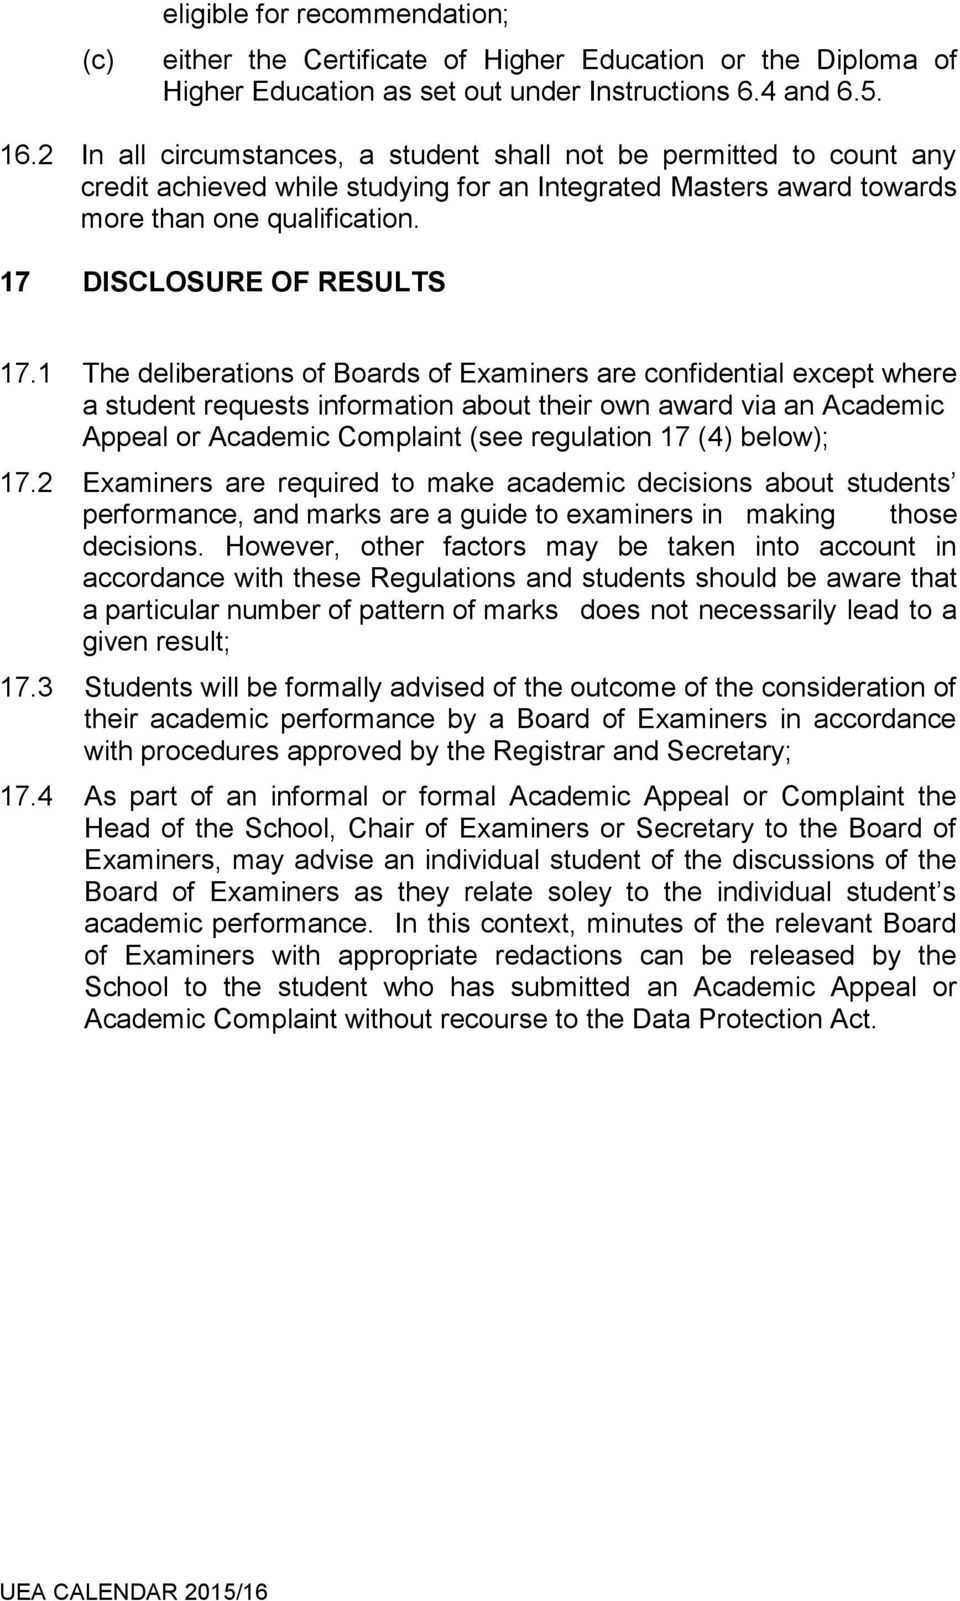 1 The deliberations of Boards of Examiners are confidential except where a student requests information about their own award via an Academic Appeal or Academic Complaint (see regulation 17 (4)